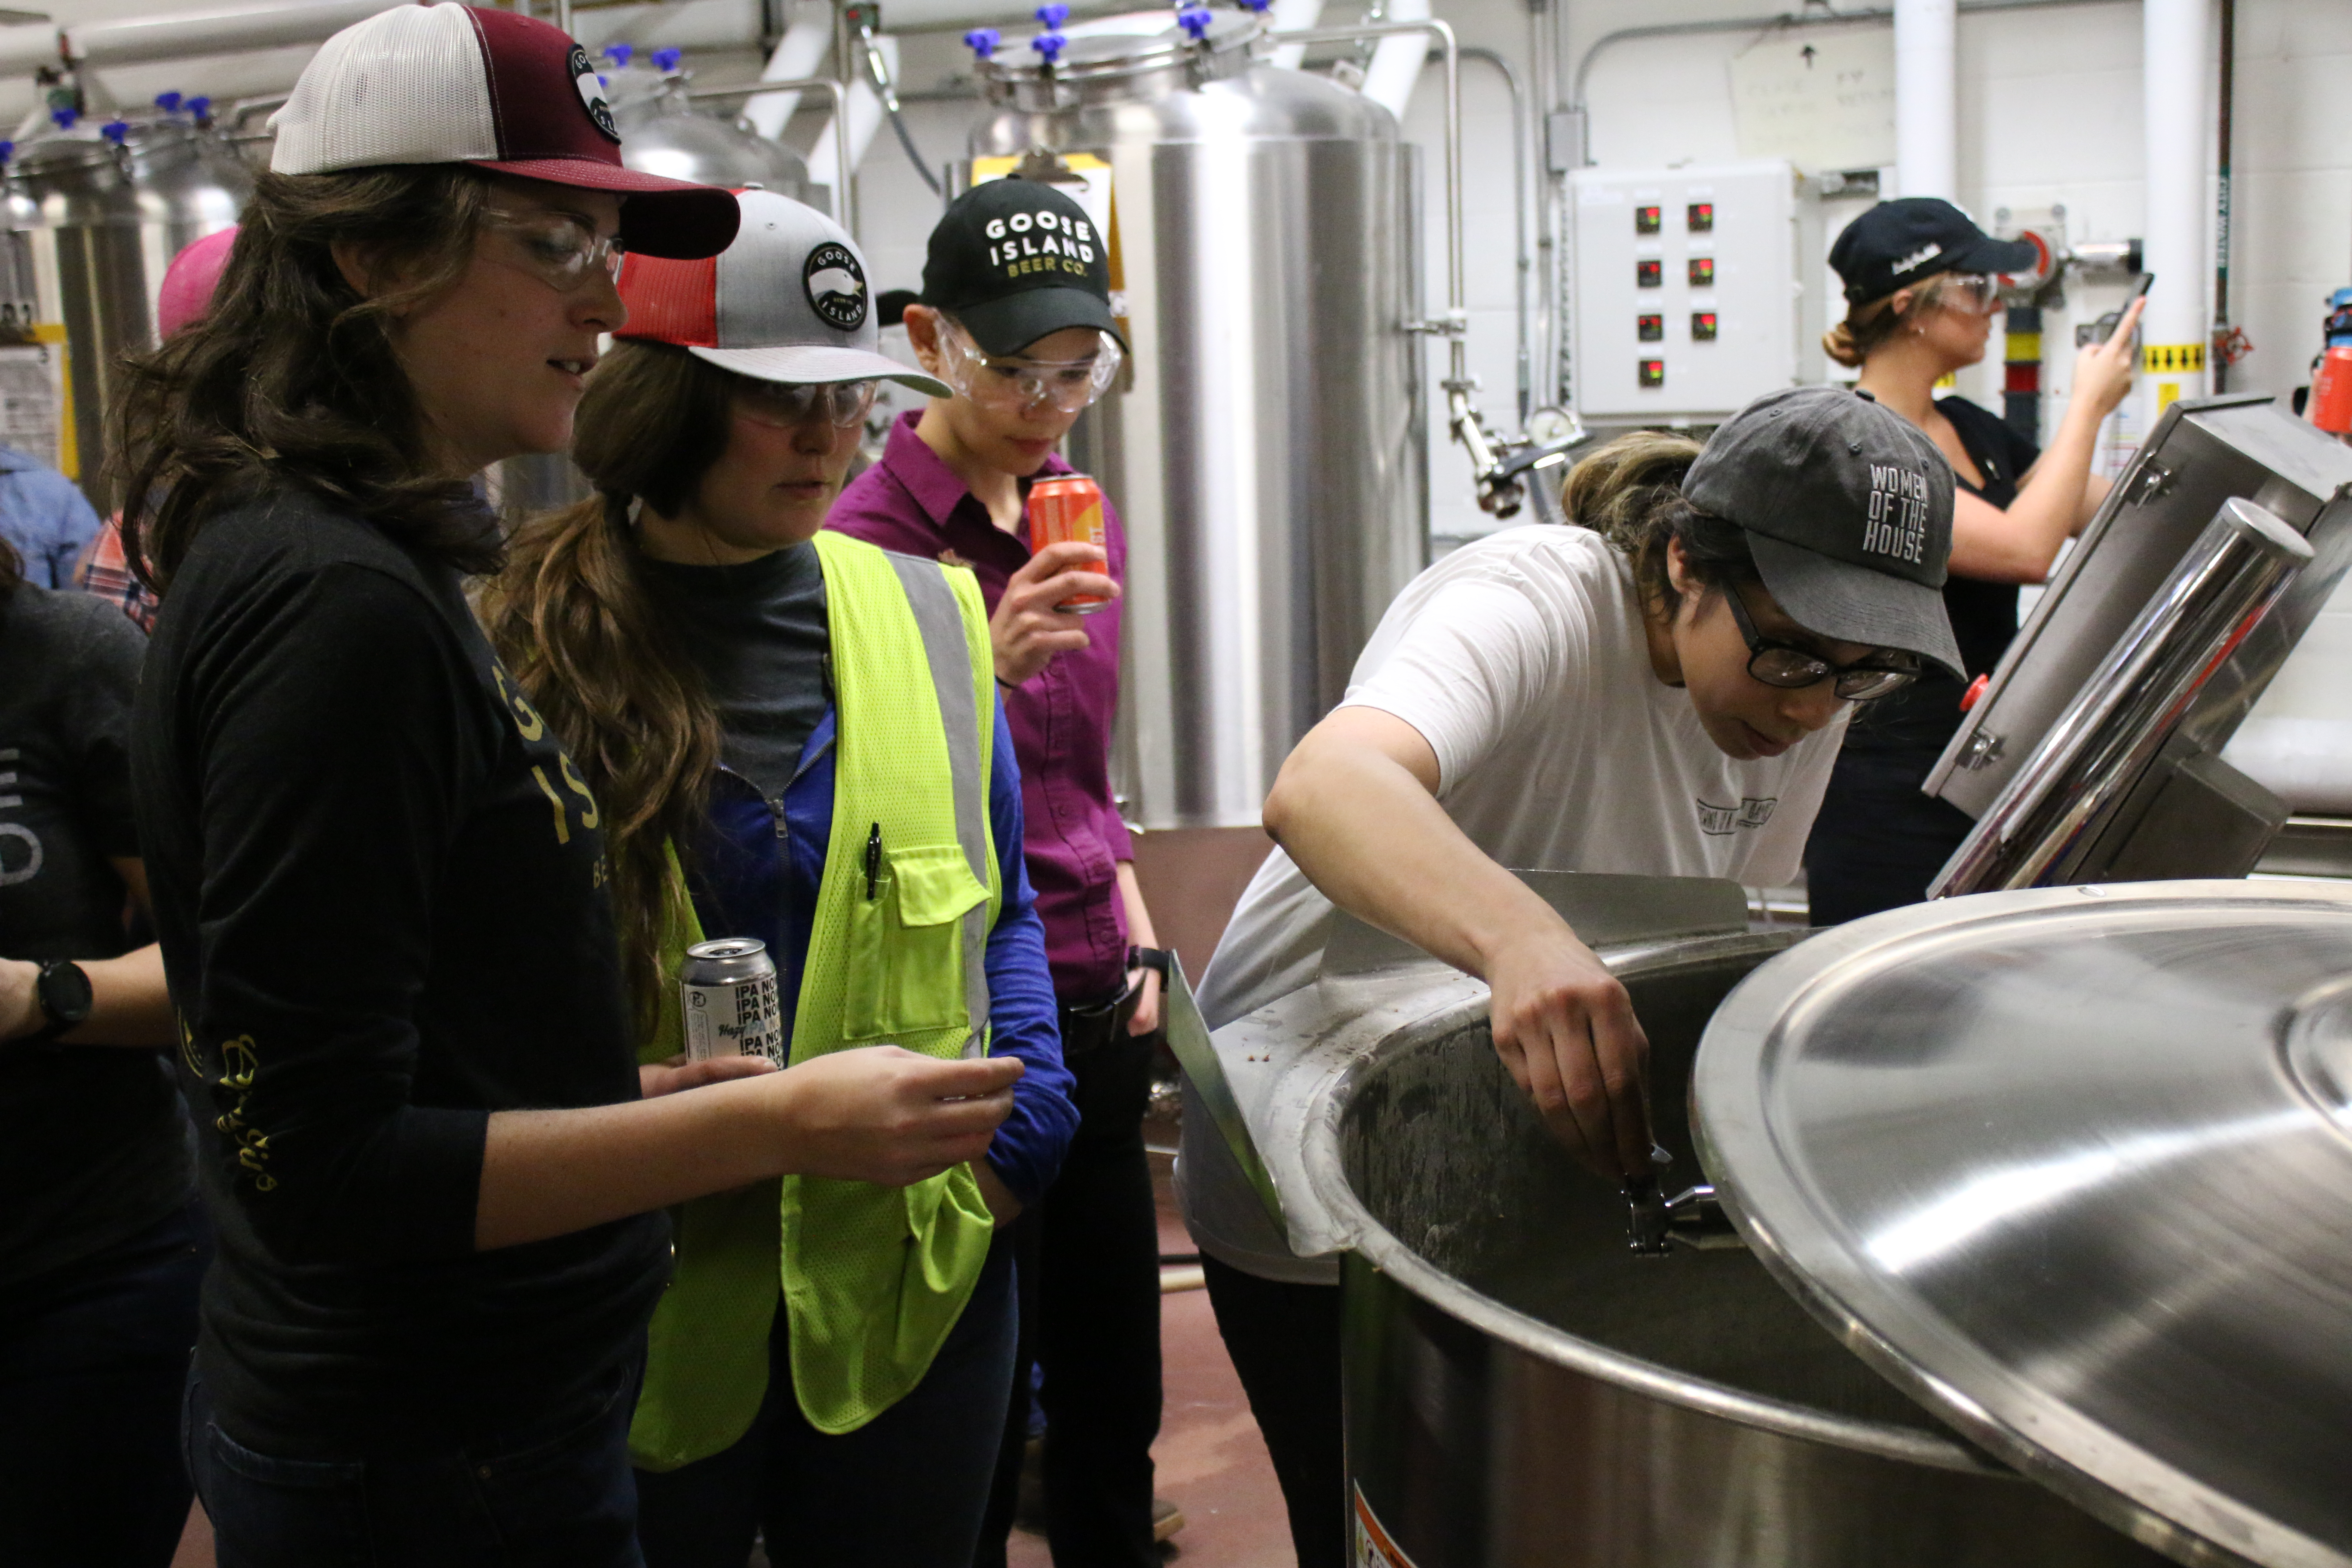 Female brewers at Goose Island, brewing a special beer called Women of the House, to be released on International Women's Day (March 8), Thursday February 13 2020.   Brian Rich/Sun-Times